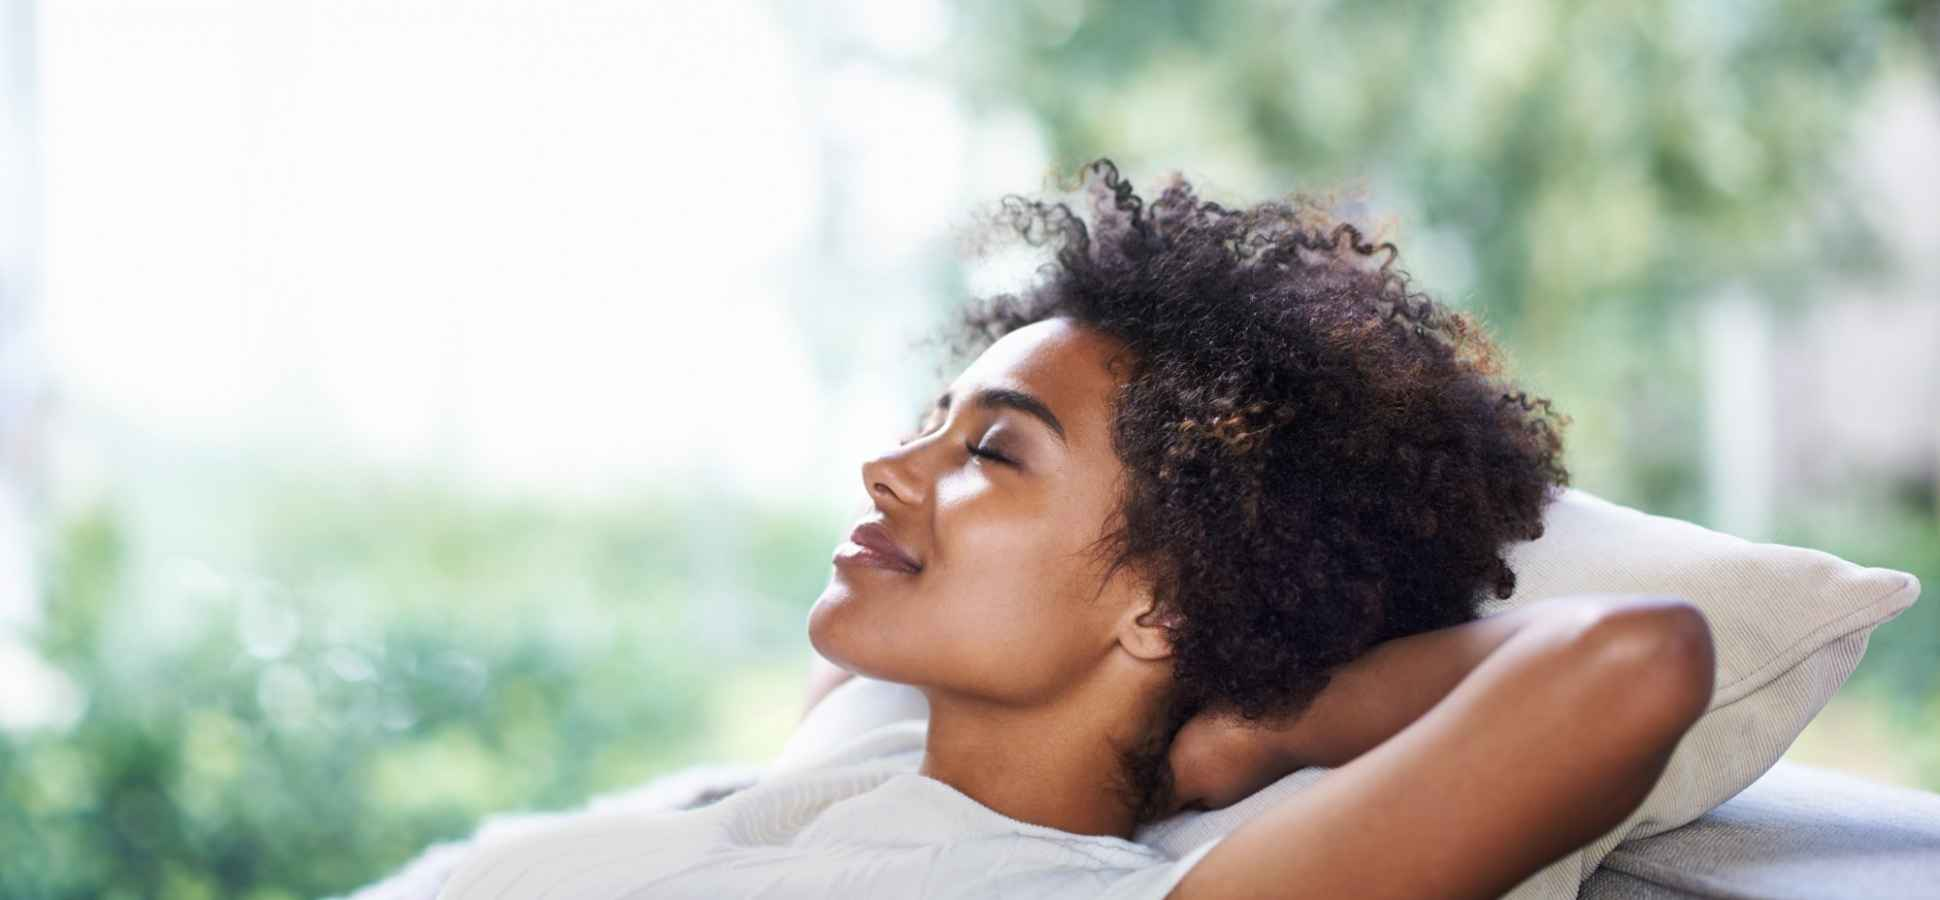 Want to Lower Your Anxiety and Get Better Sleep? Science Says to Do This Nightly (You Can Do It in Your Sleep)